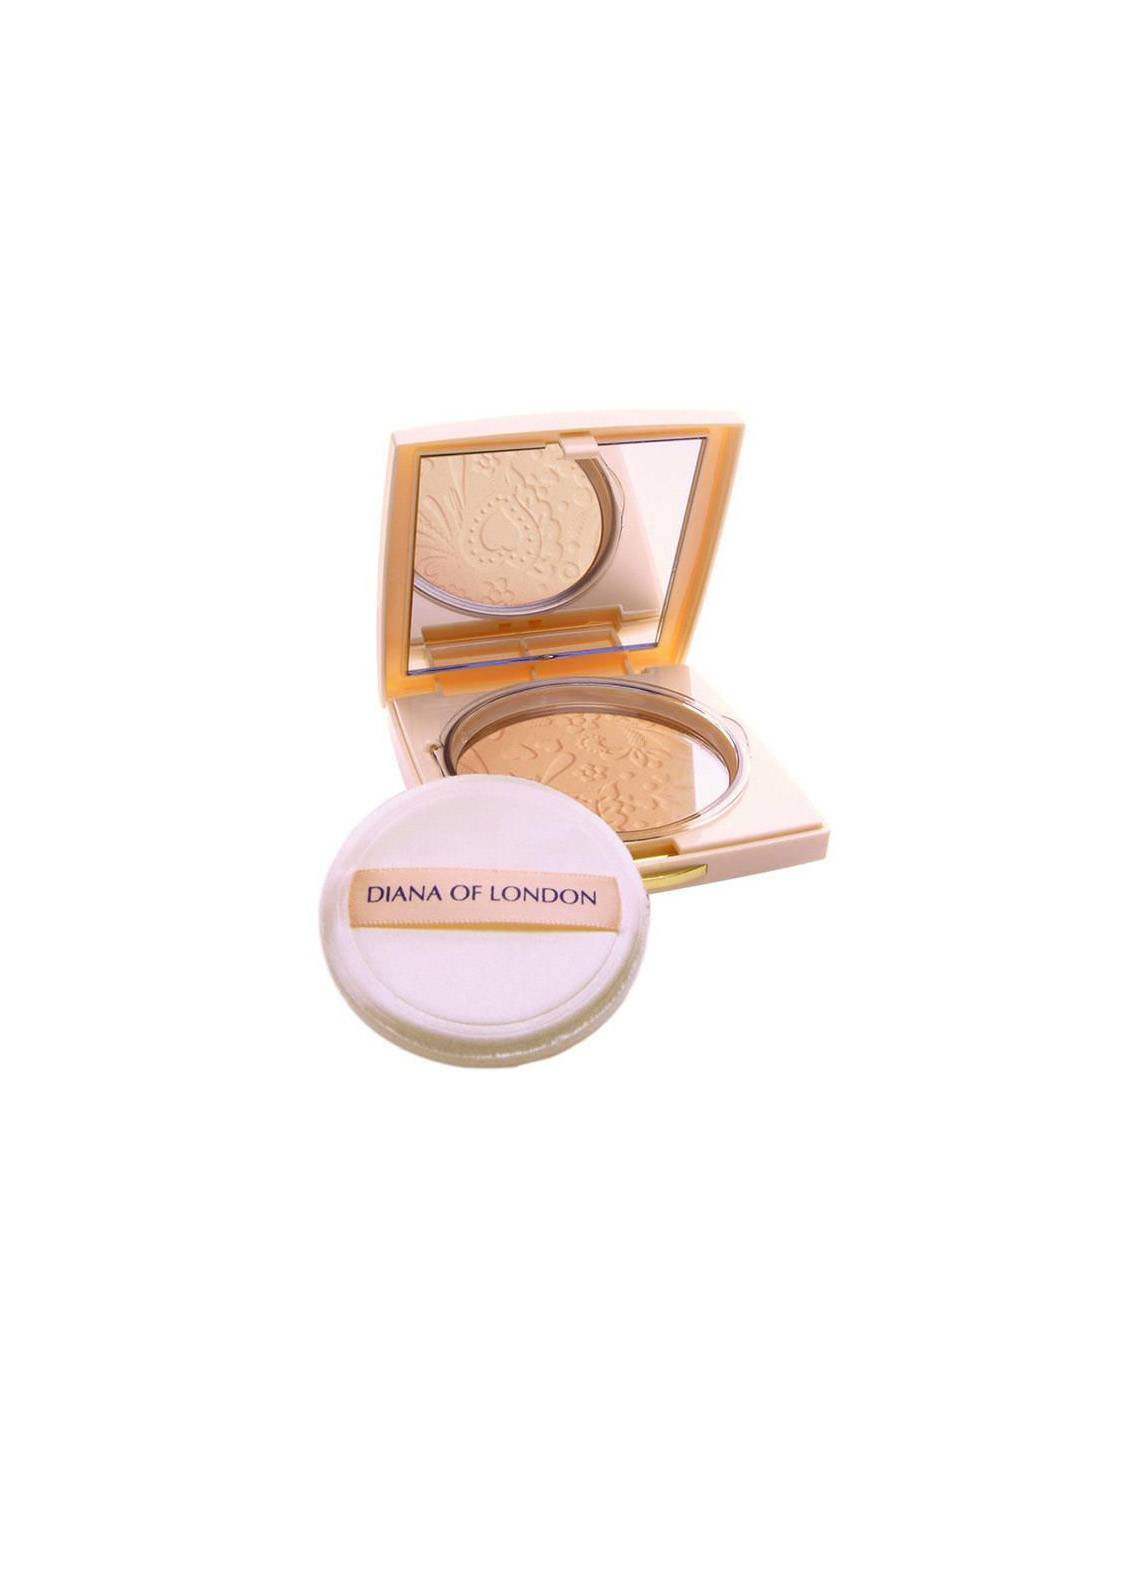 Diana Of London Absolute Compact Powder - Fresh Coral-402